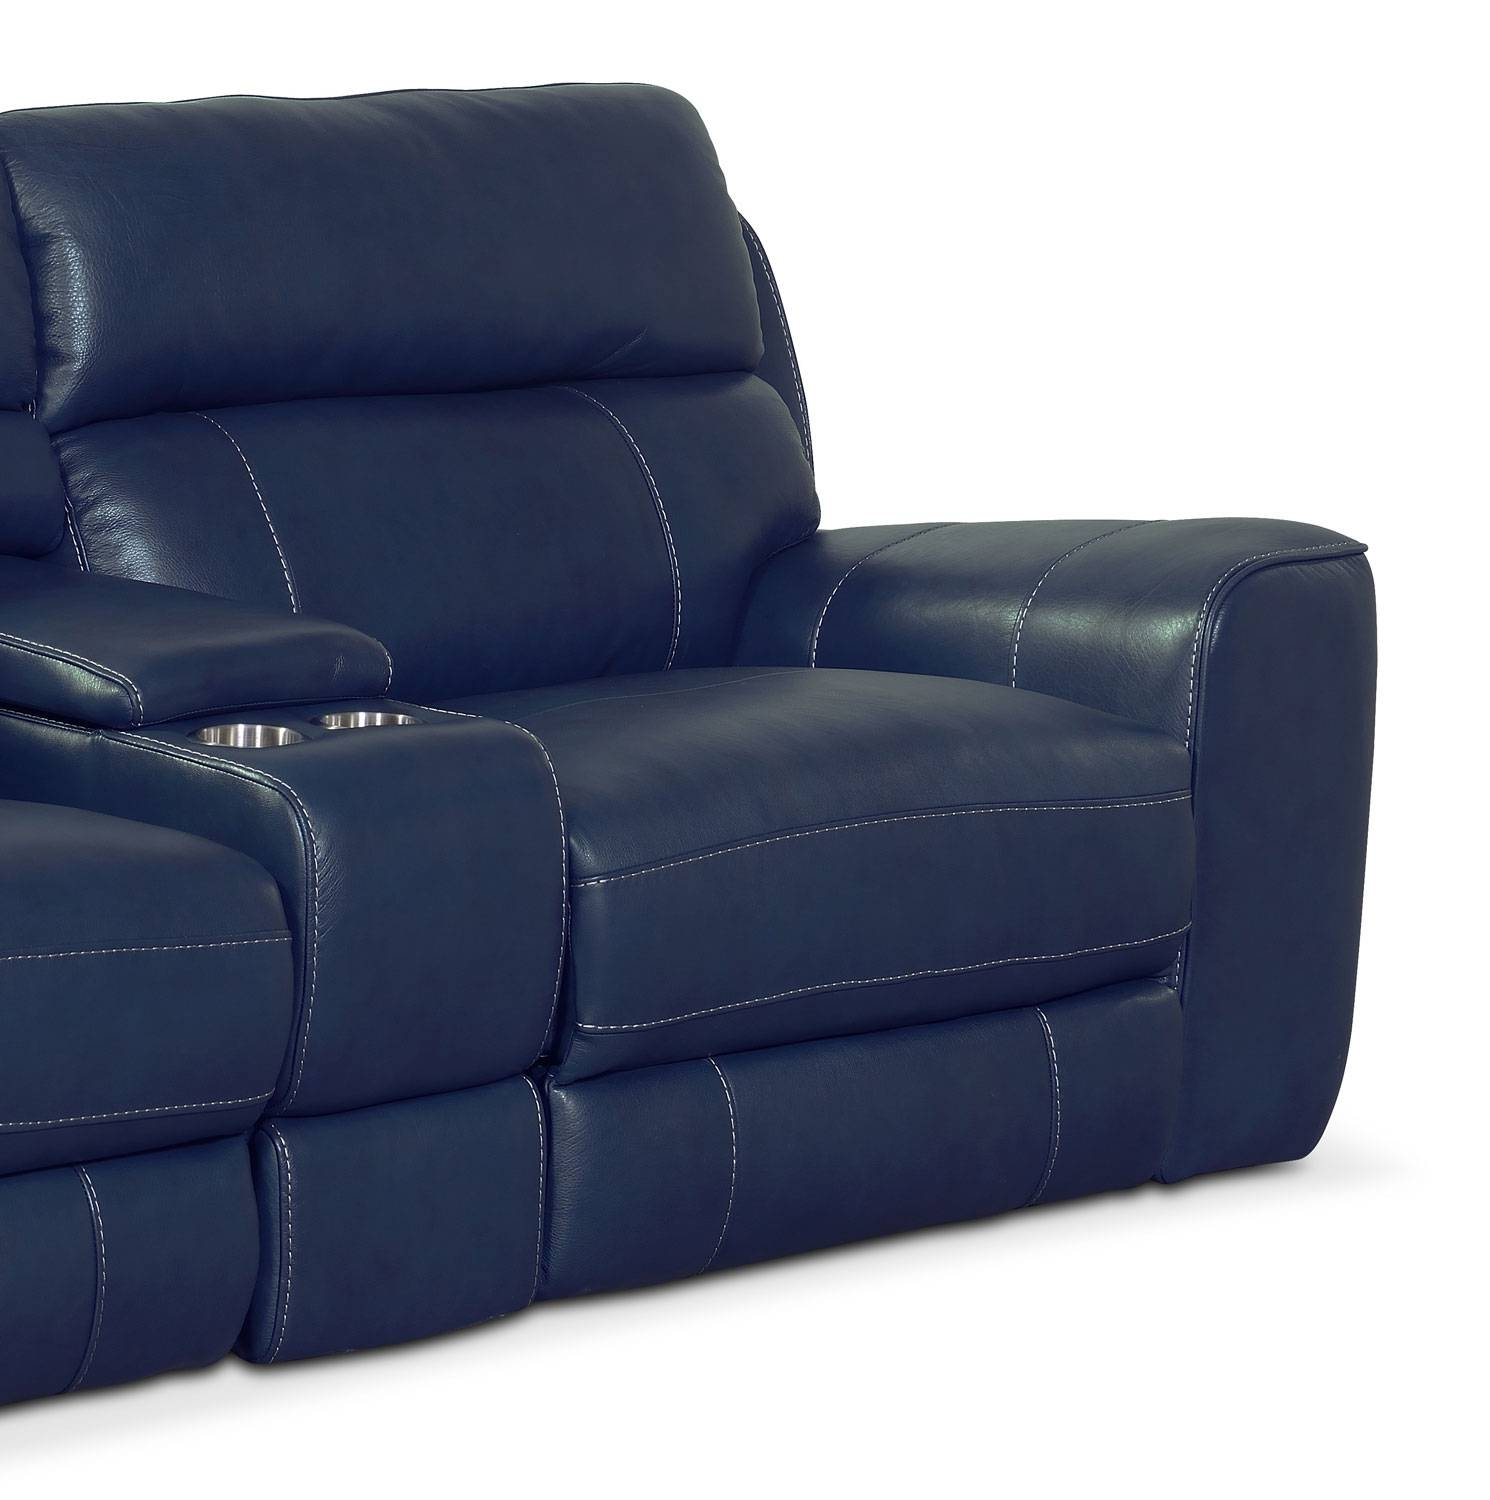 Newport 3-Piece Power Reclining Sofa - Blue | American Signature inside Newport Sofas (Image 14 of 30)